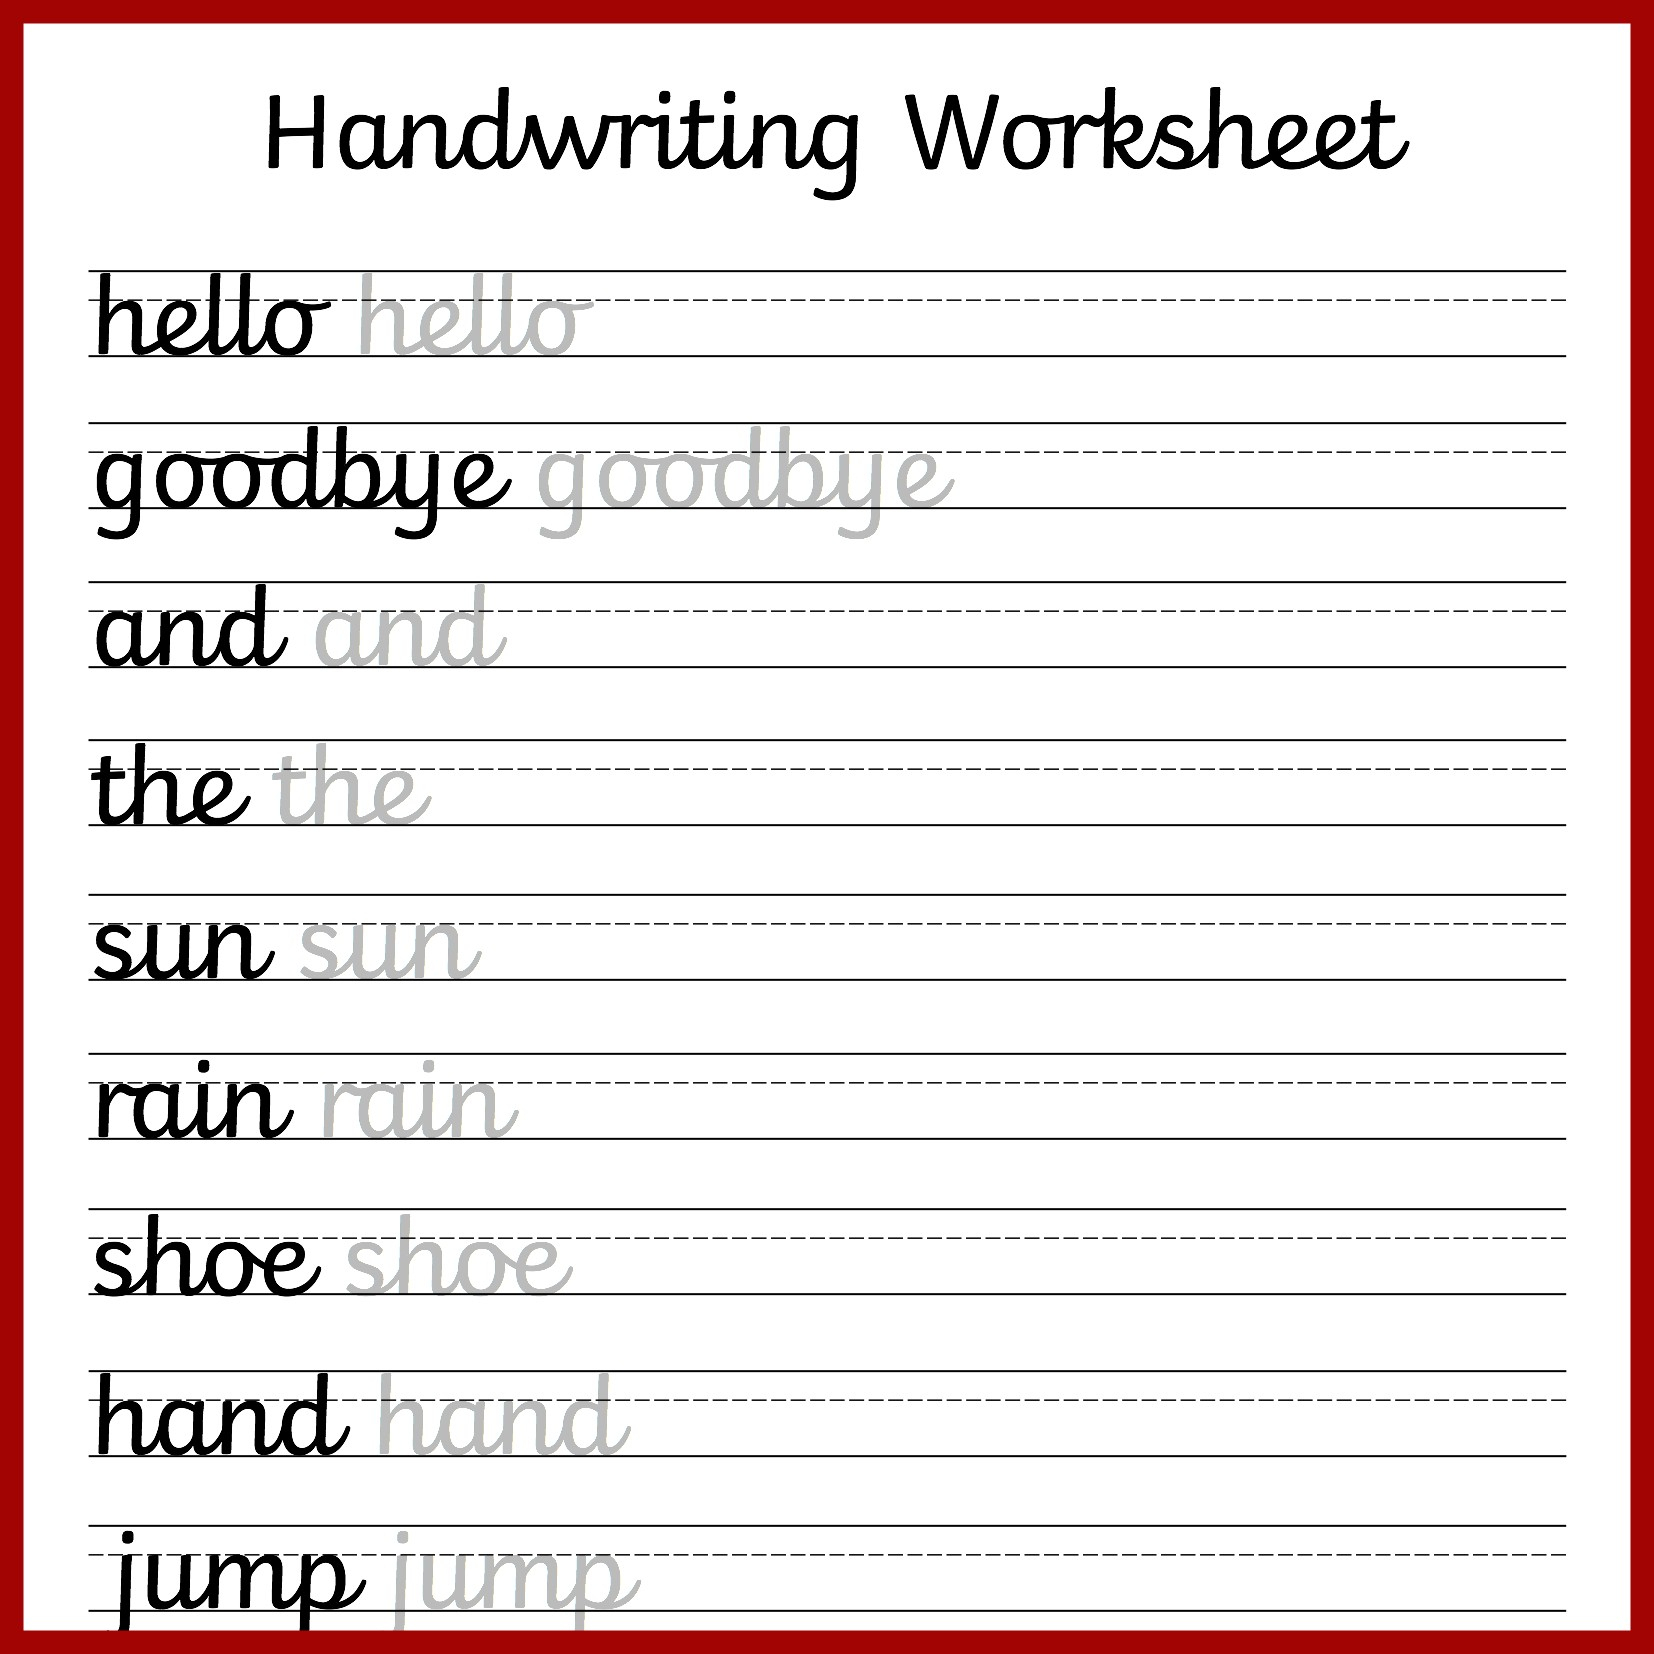 Free Preschool Writing Worksheets – With Kindergarten Handwriting | Preschool Writing Worksheets Free Printable